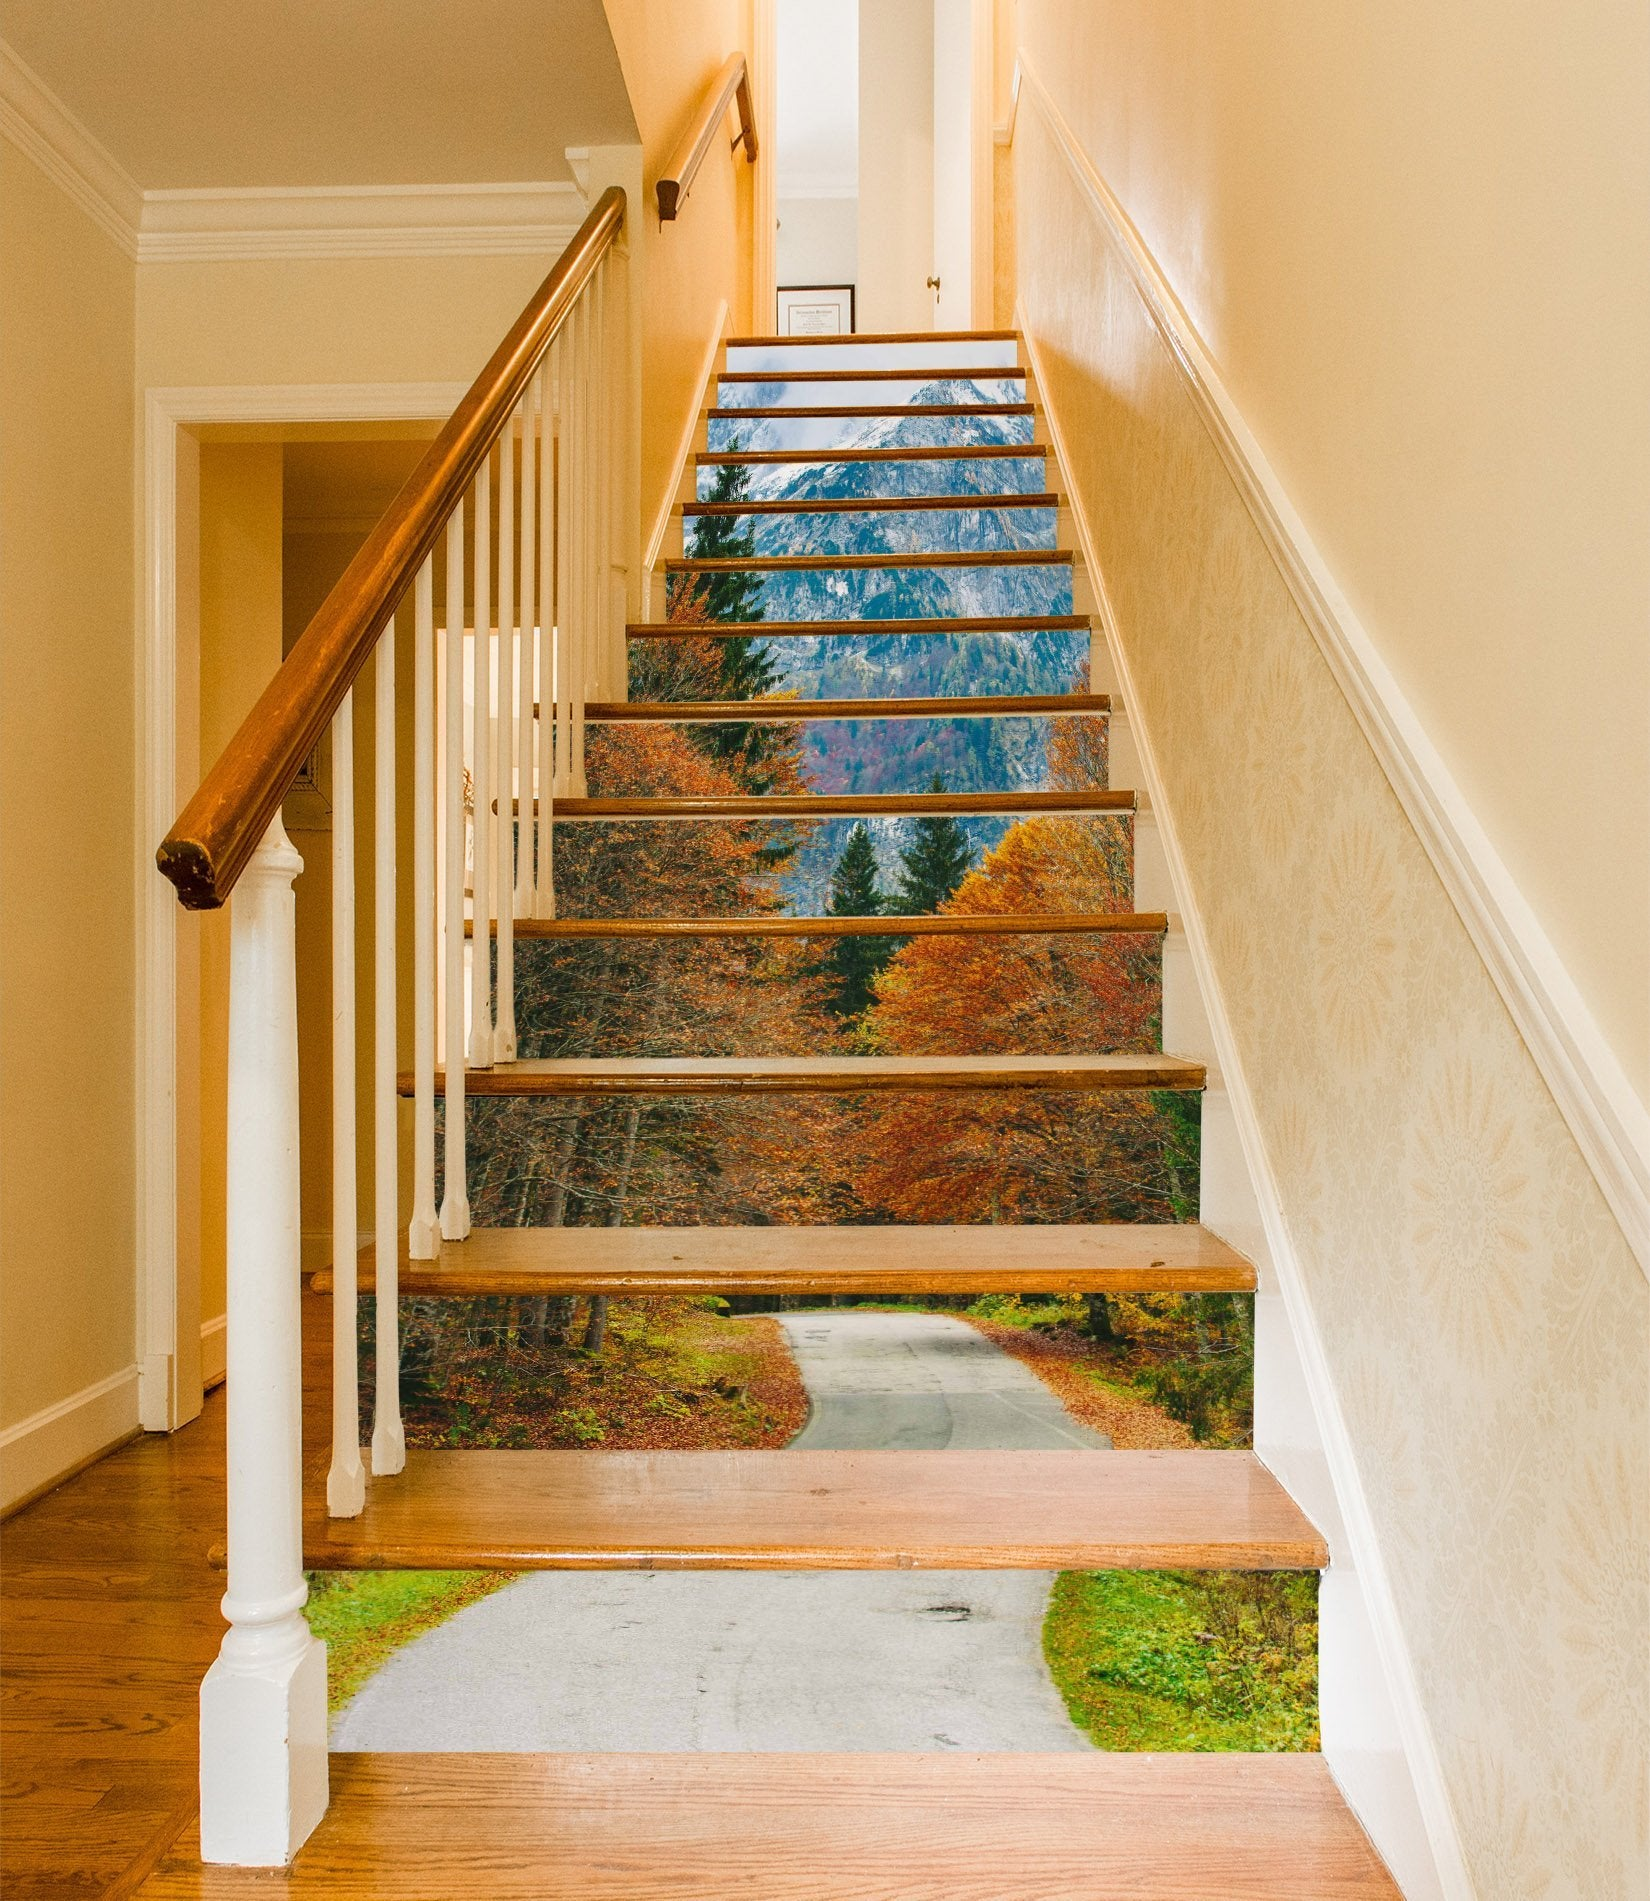 3D Natural Scenery 956 Stair Risers